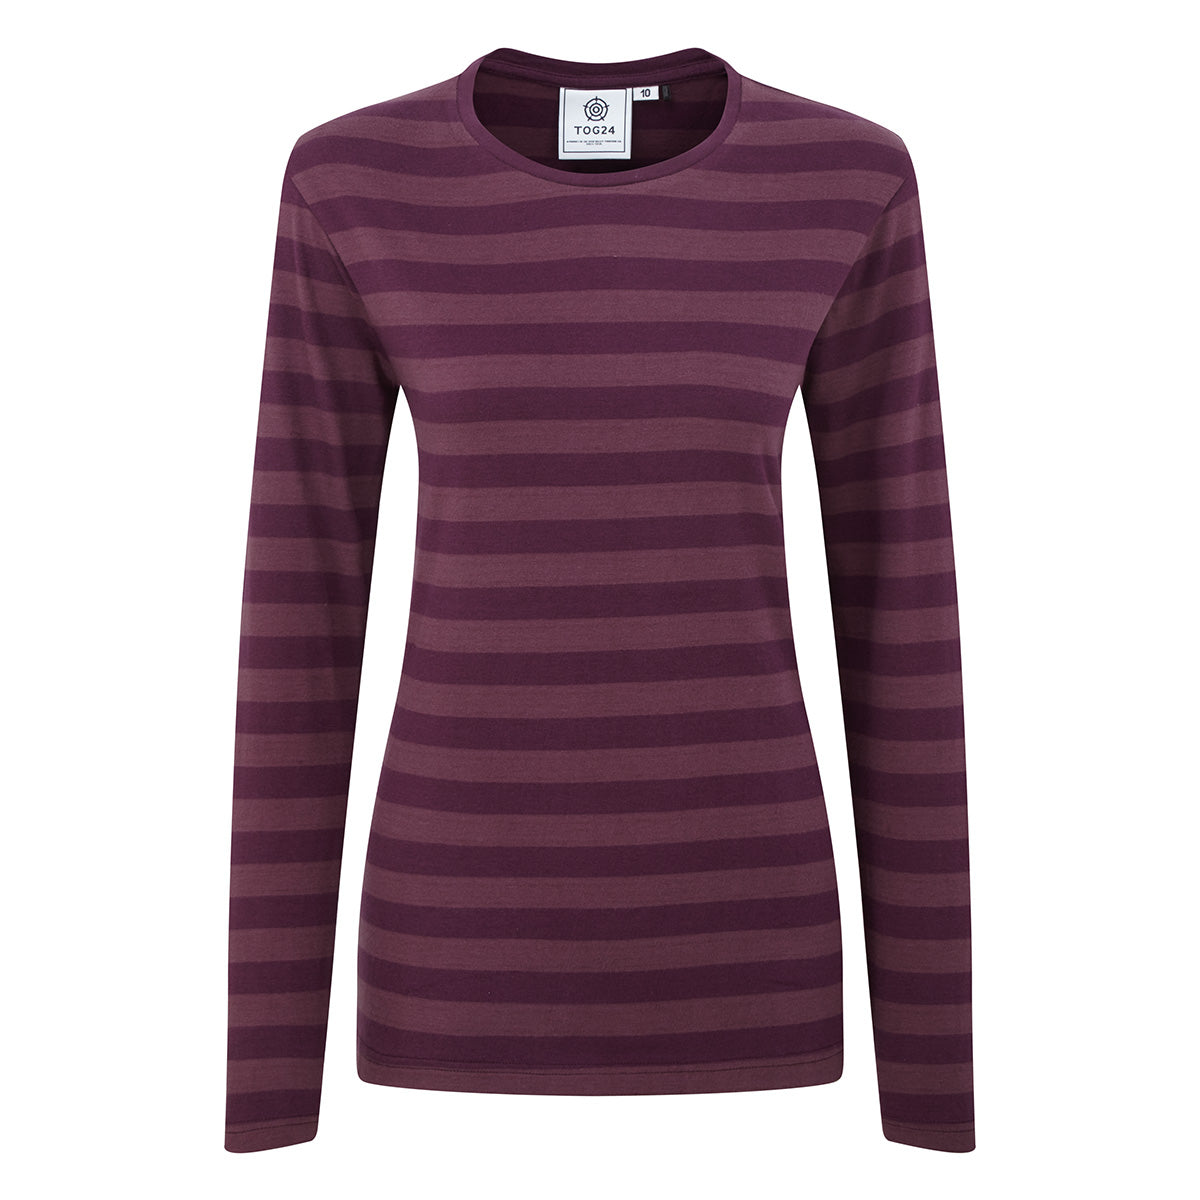 Holmfield Womens Long Sleeve Stripe T-Shirt - Aubergine image 4